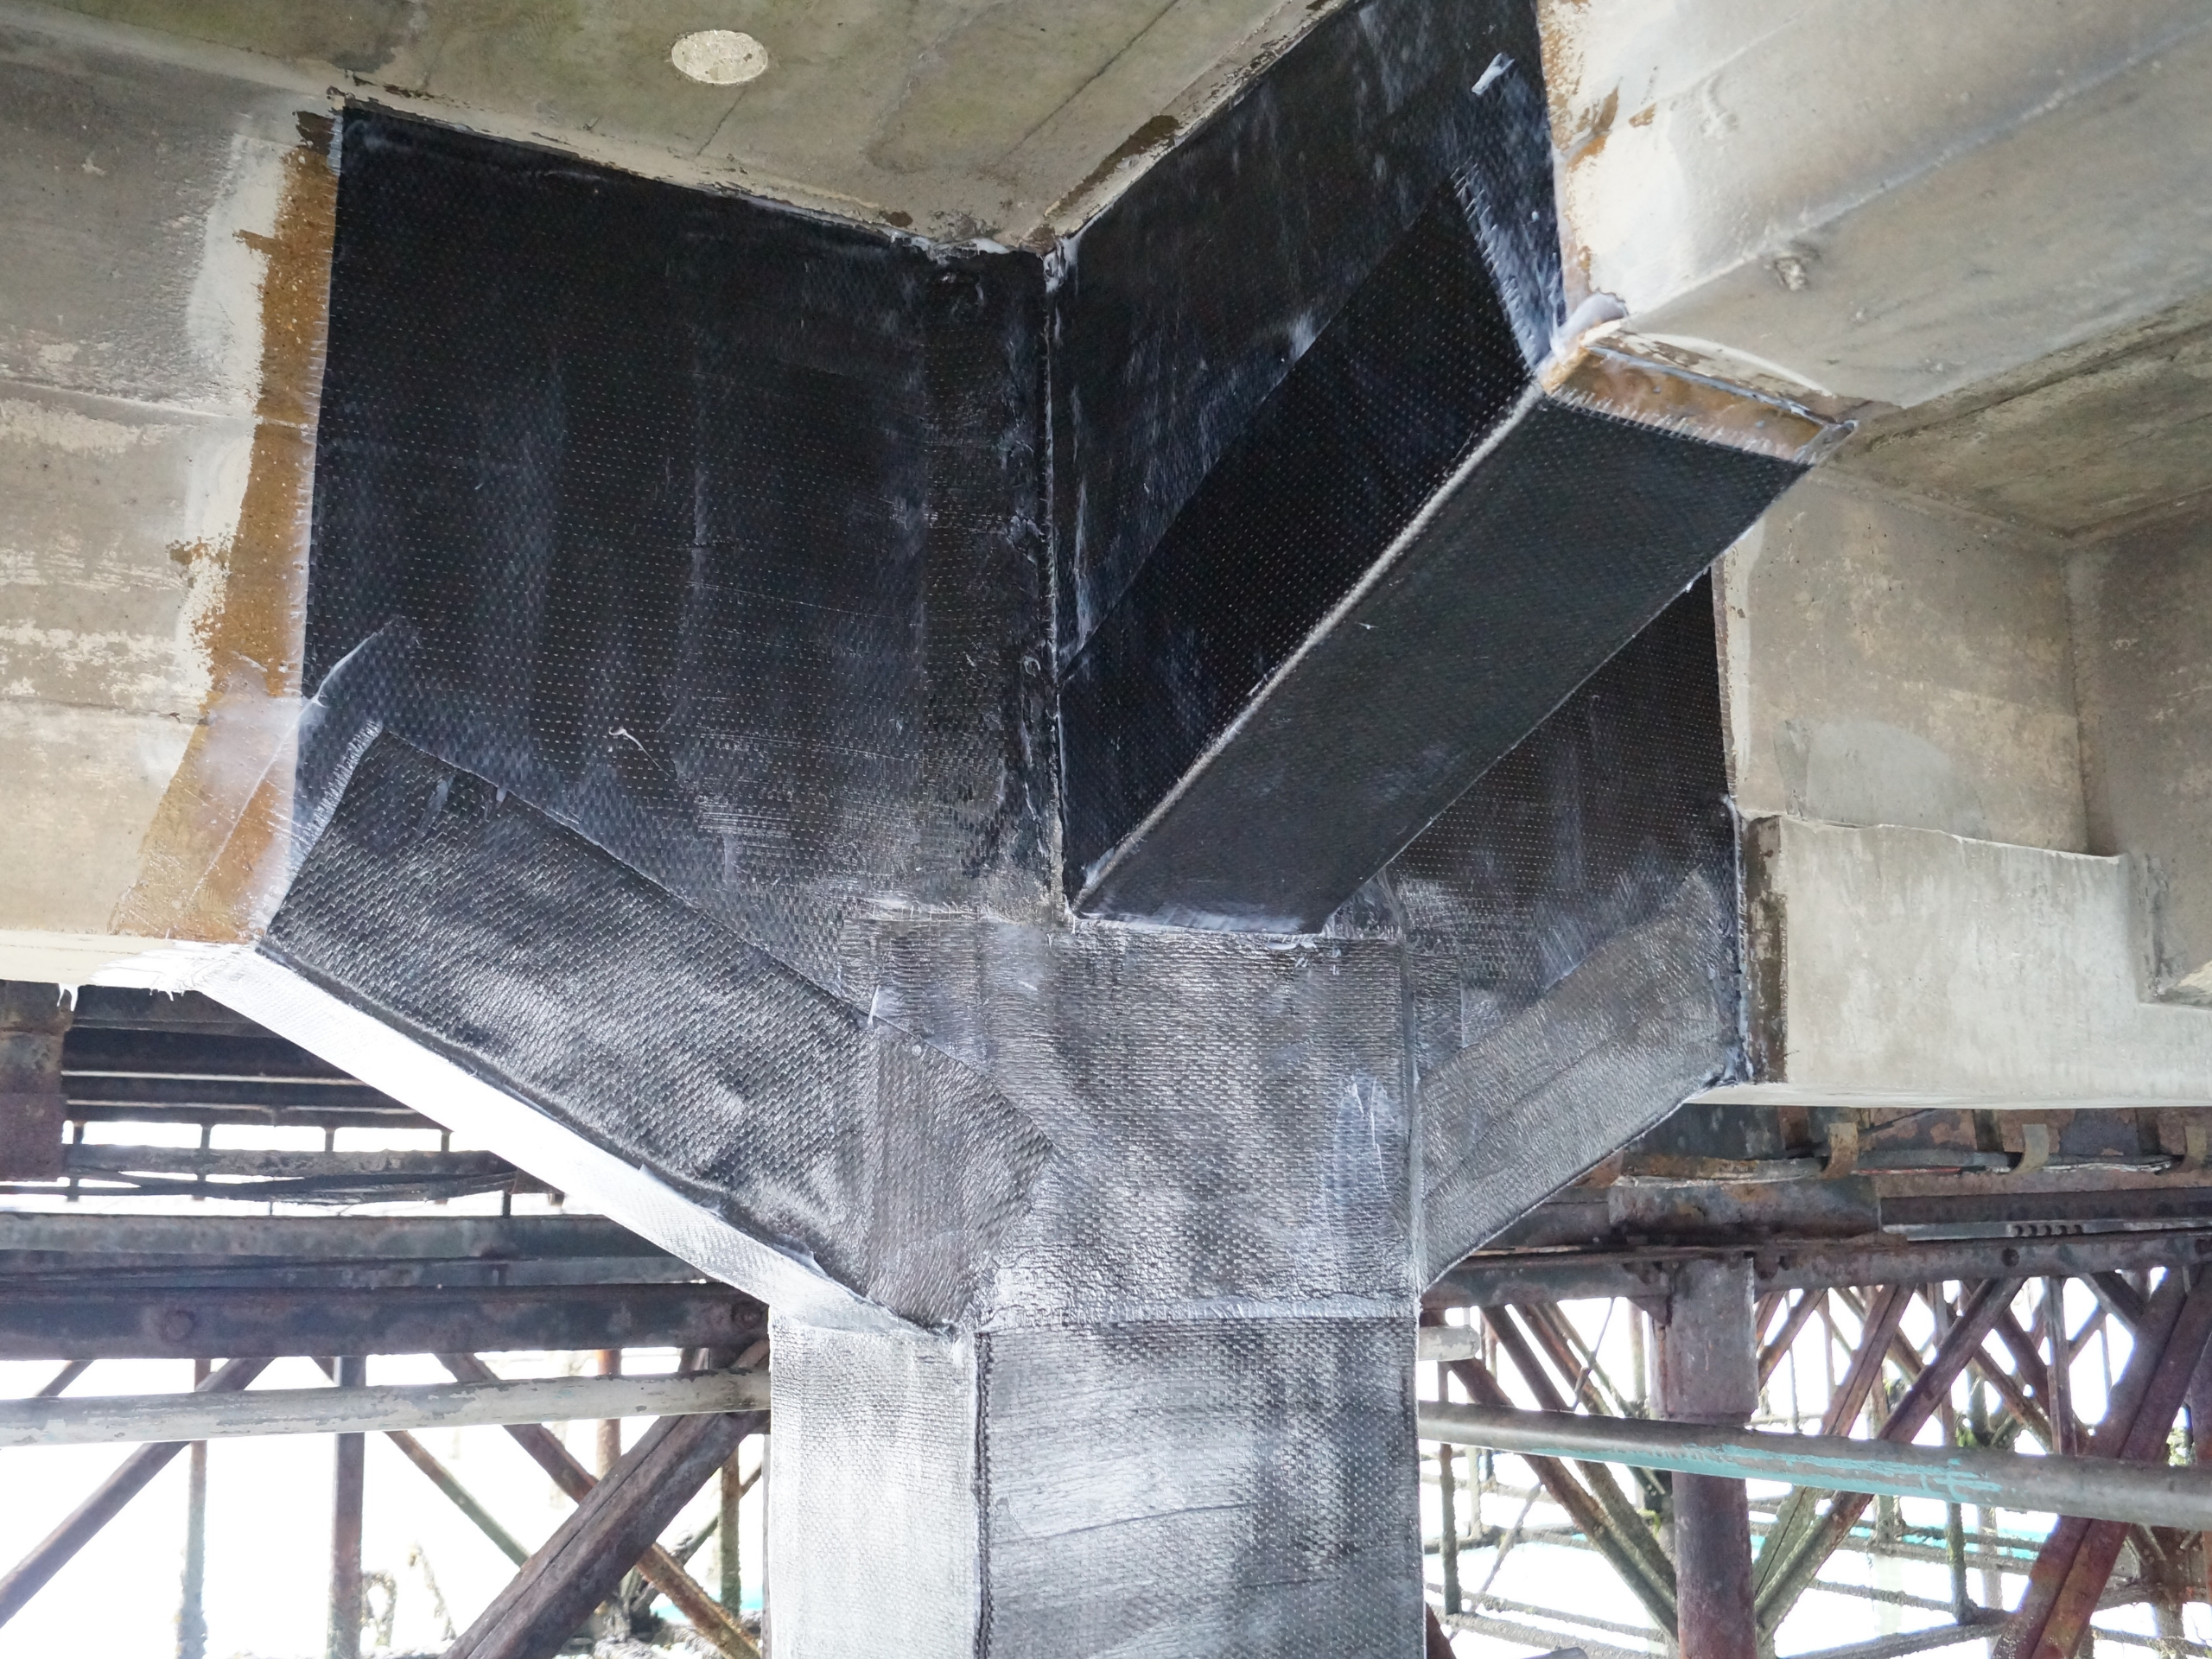 Carbon Fibre Strengthening for additional loads in a Marine Environment